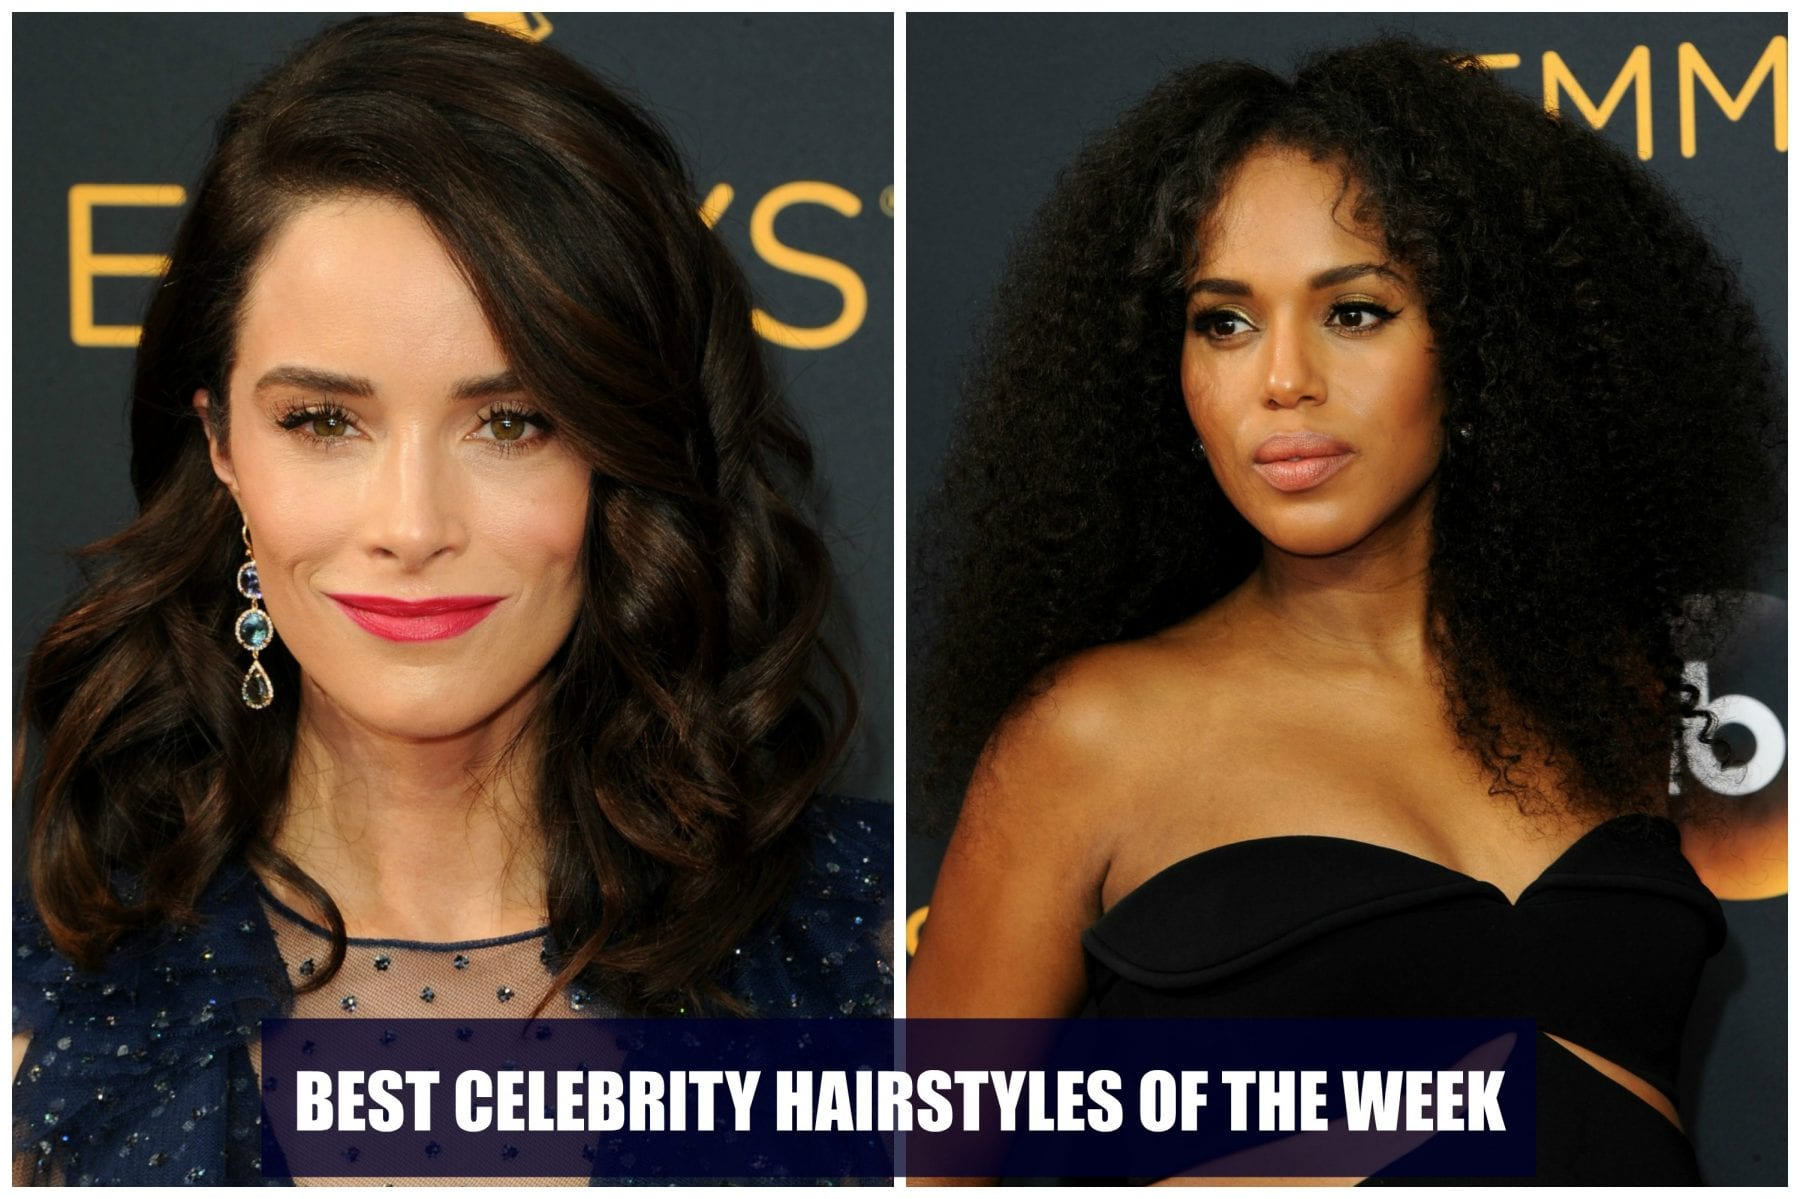 Best Celebrity Hairstyles of the Week